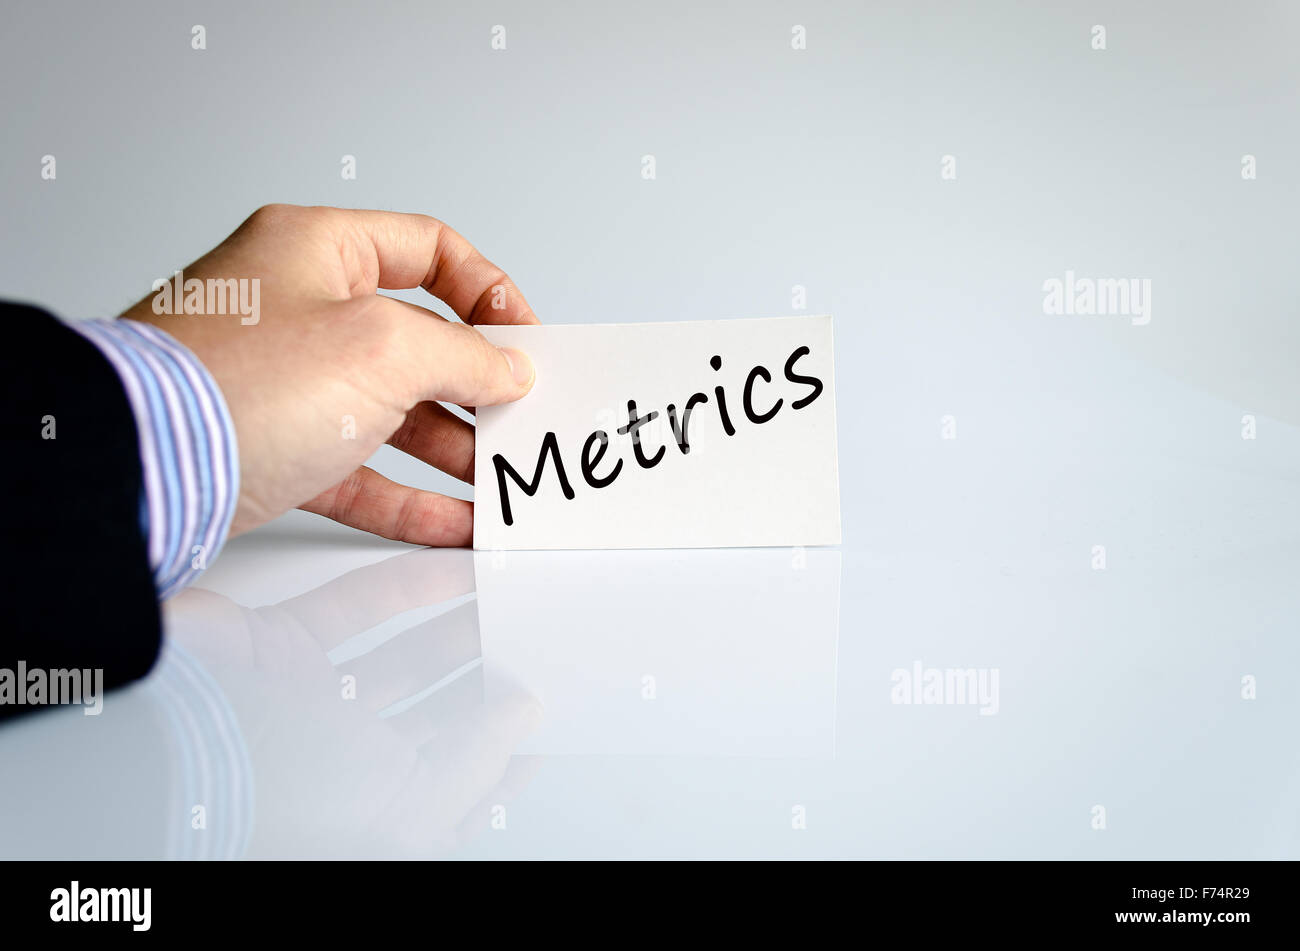 Metrics text concept isolated over white background - Stock Image